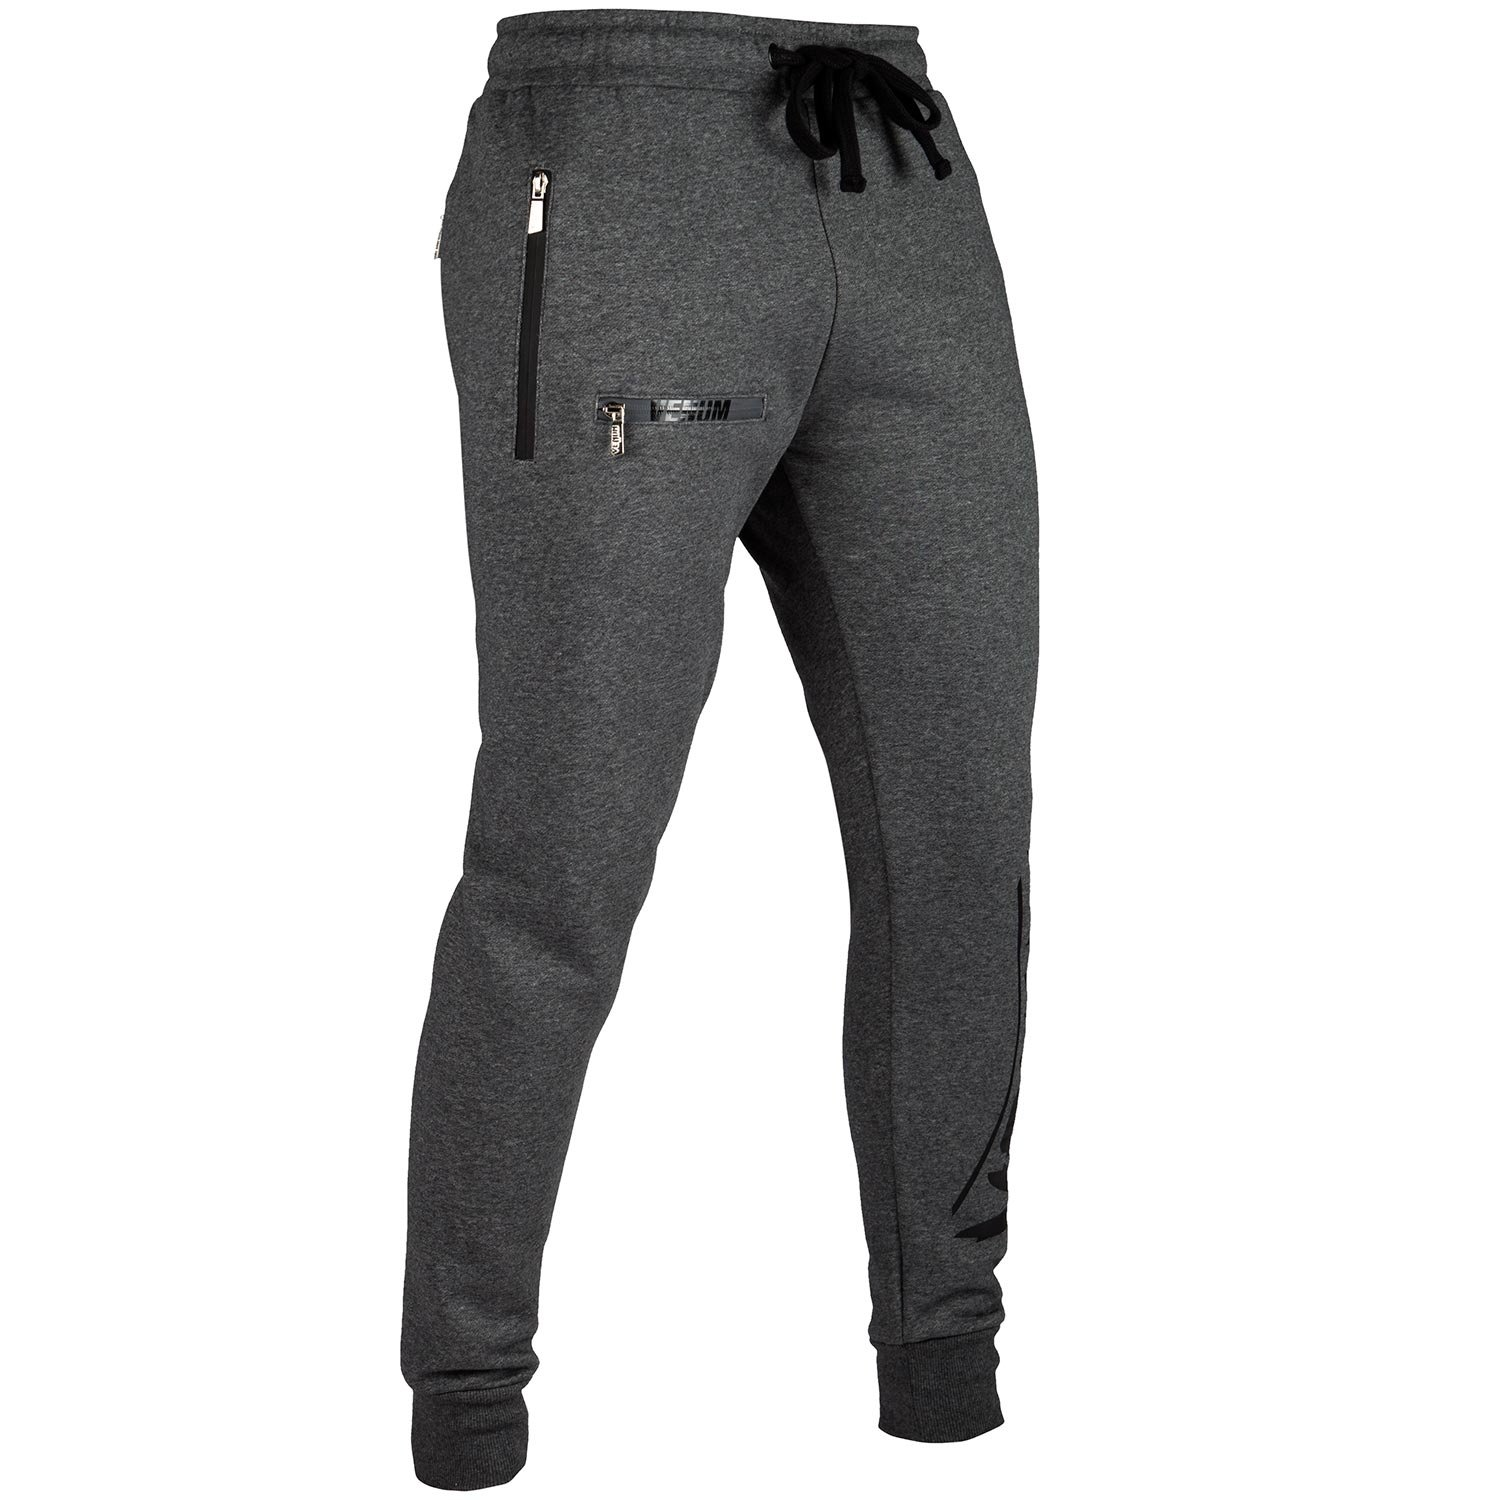 Venum Contender 2.0 Jogging Pants - Grey/Black - Medium by Venum (Image #4)